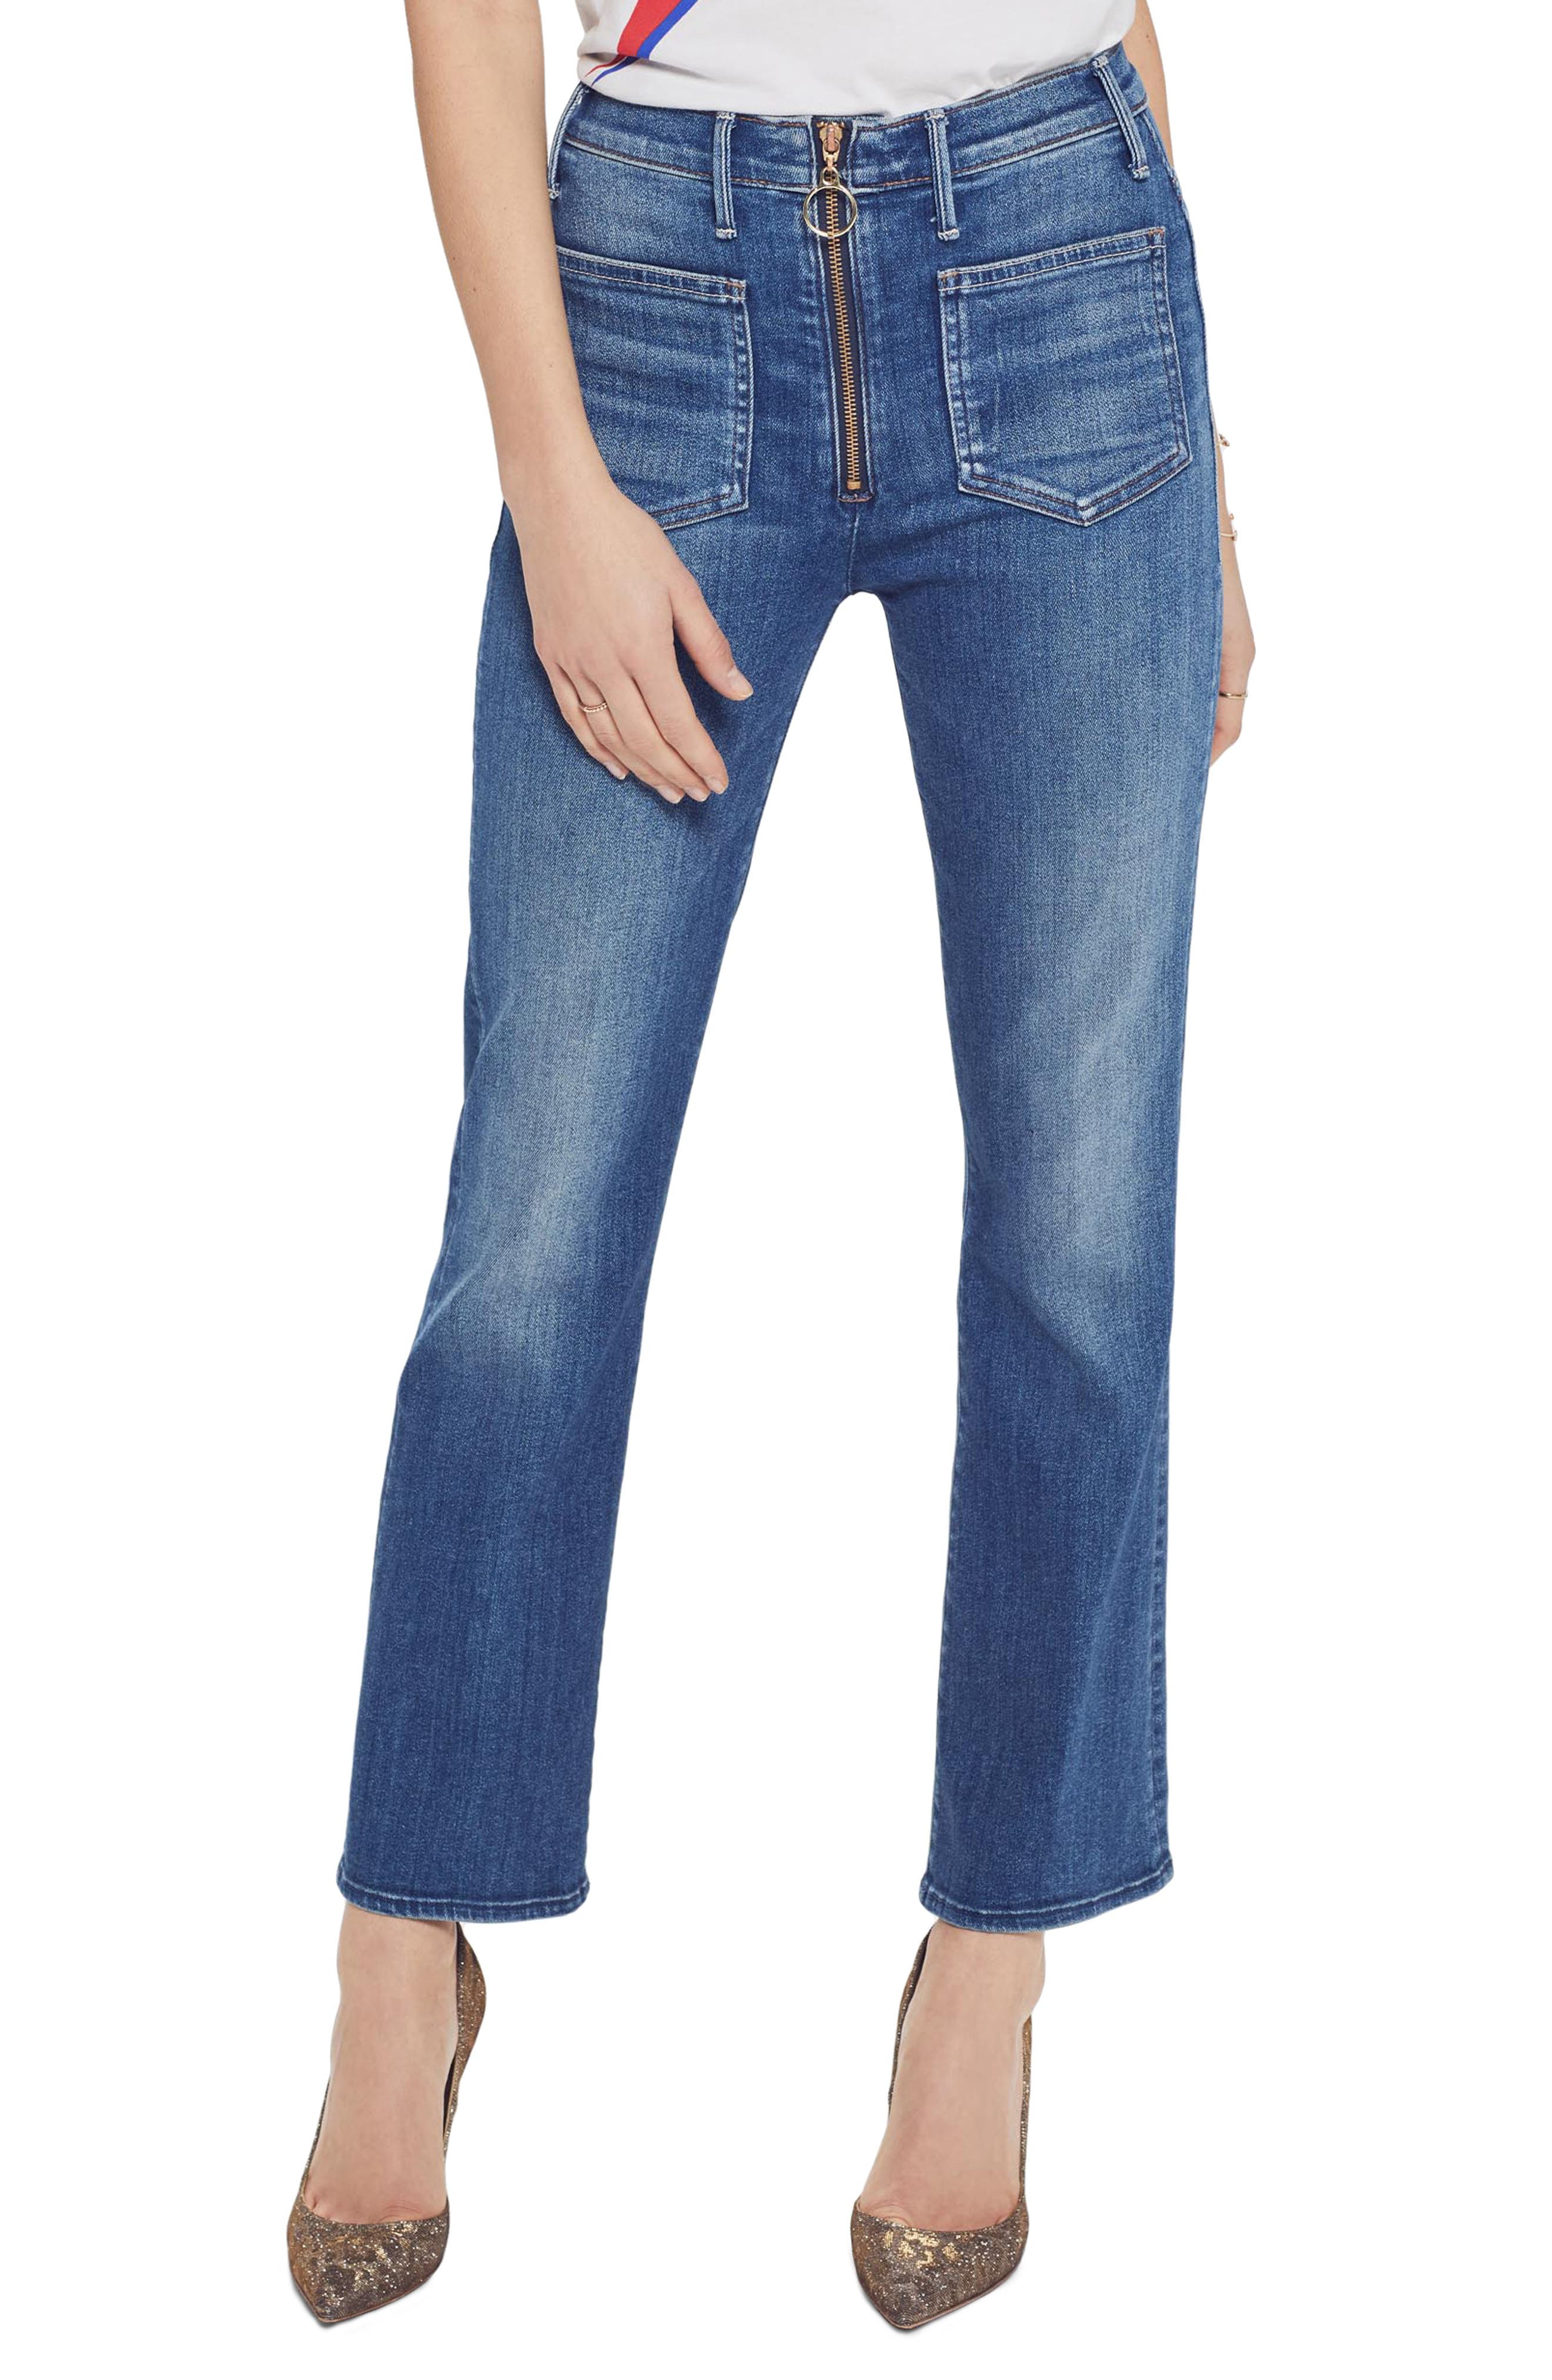 The Insider High Waist Patch Crop Bootcut Jeans in Satisfaction Guaranteed